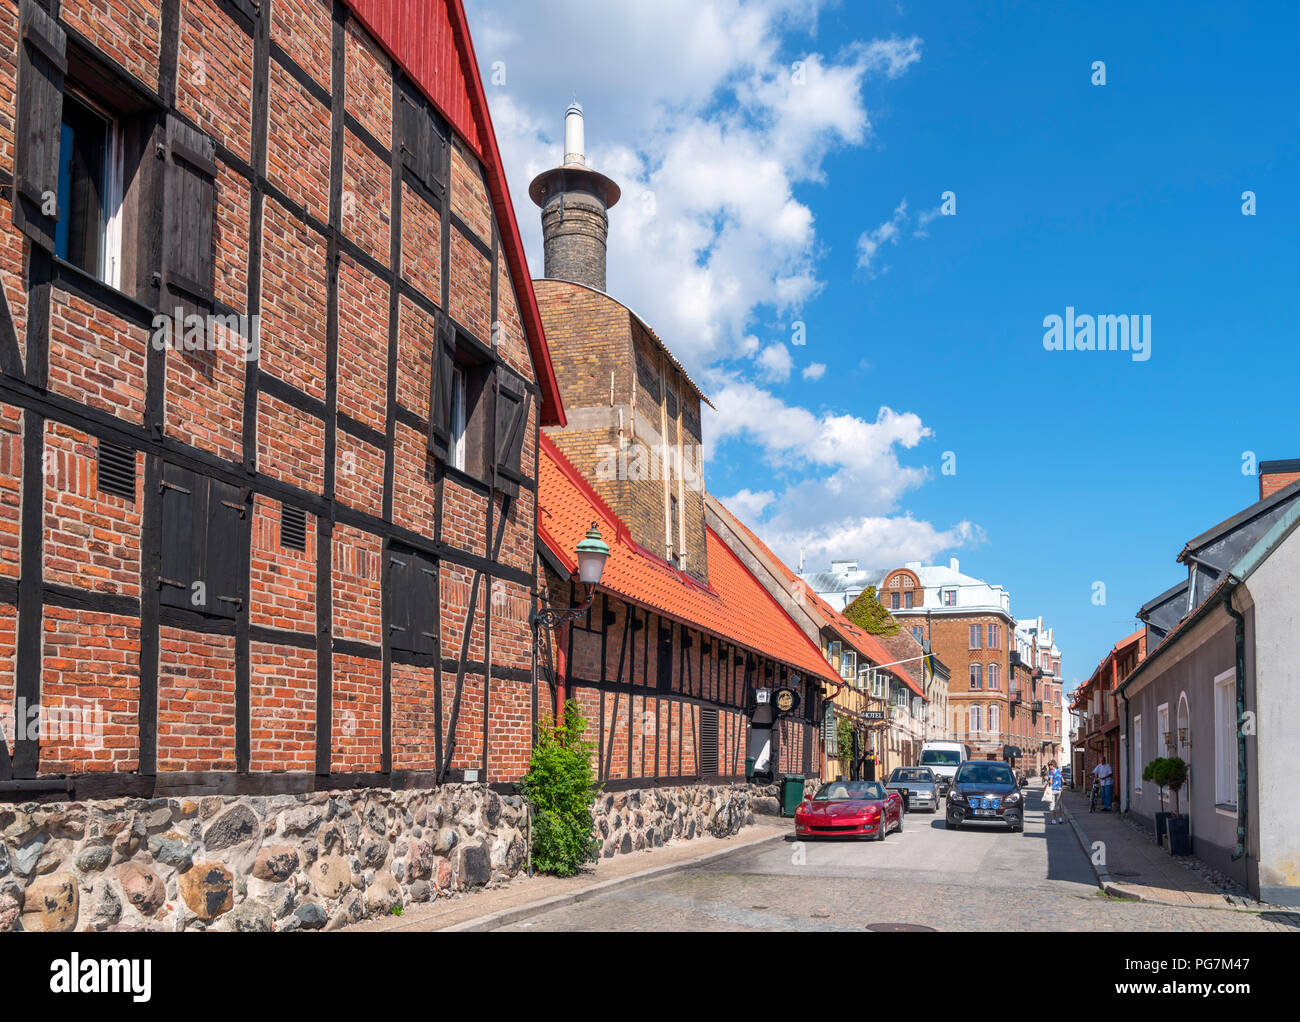 Traditional houses in the old market town of Ystad, Scania, Sweden - Stock Image